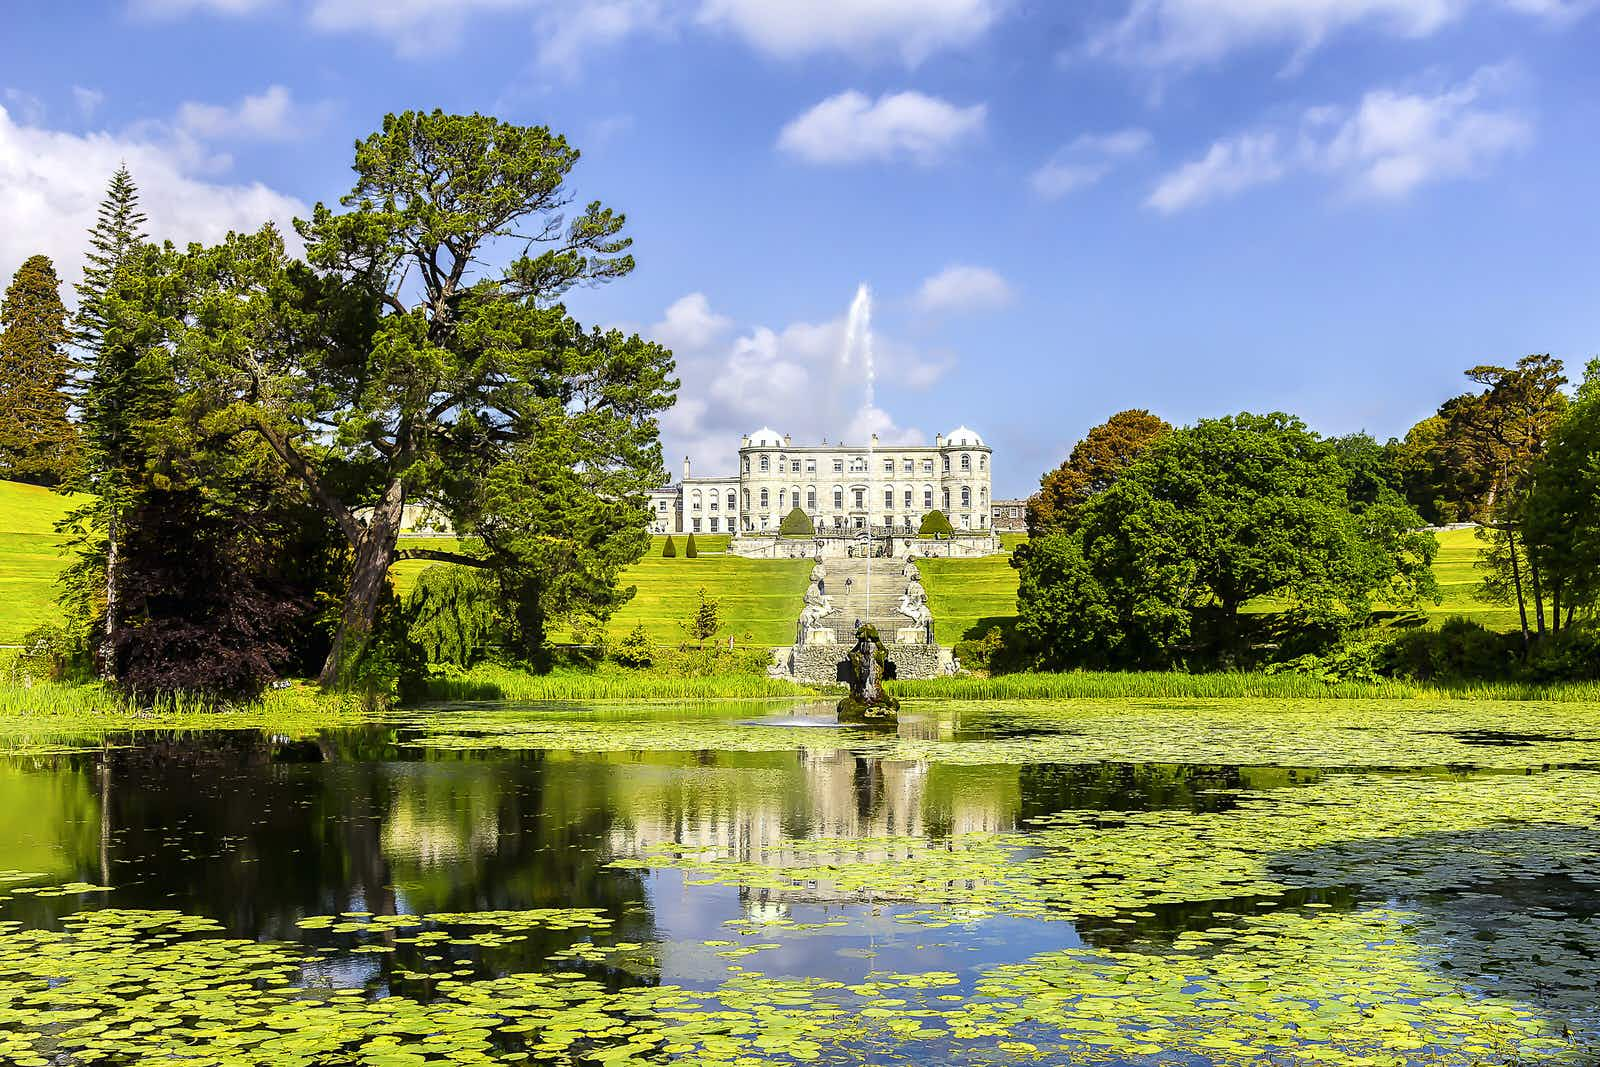 Discover magnificent Powerscourt House in Wicklow © alredosaz / Shutterstock